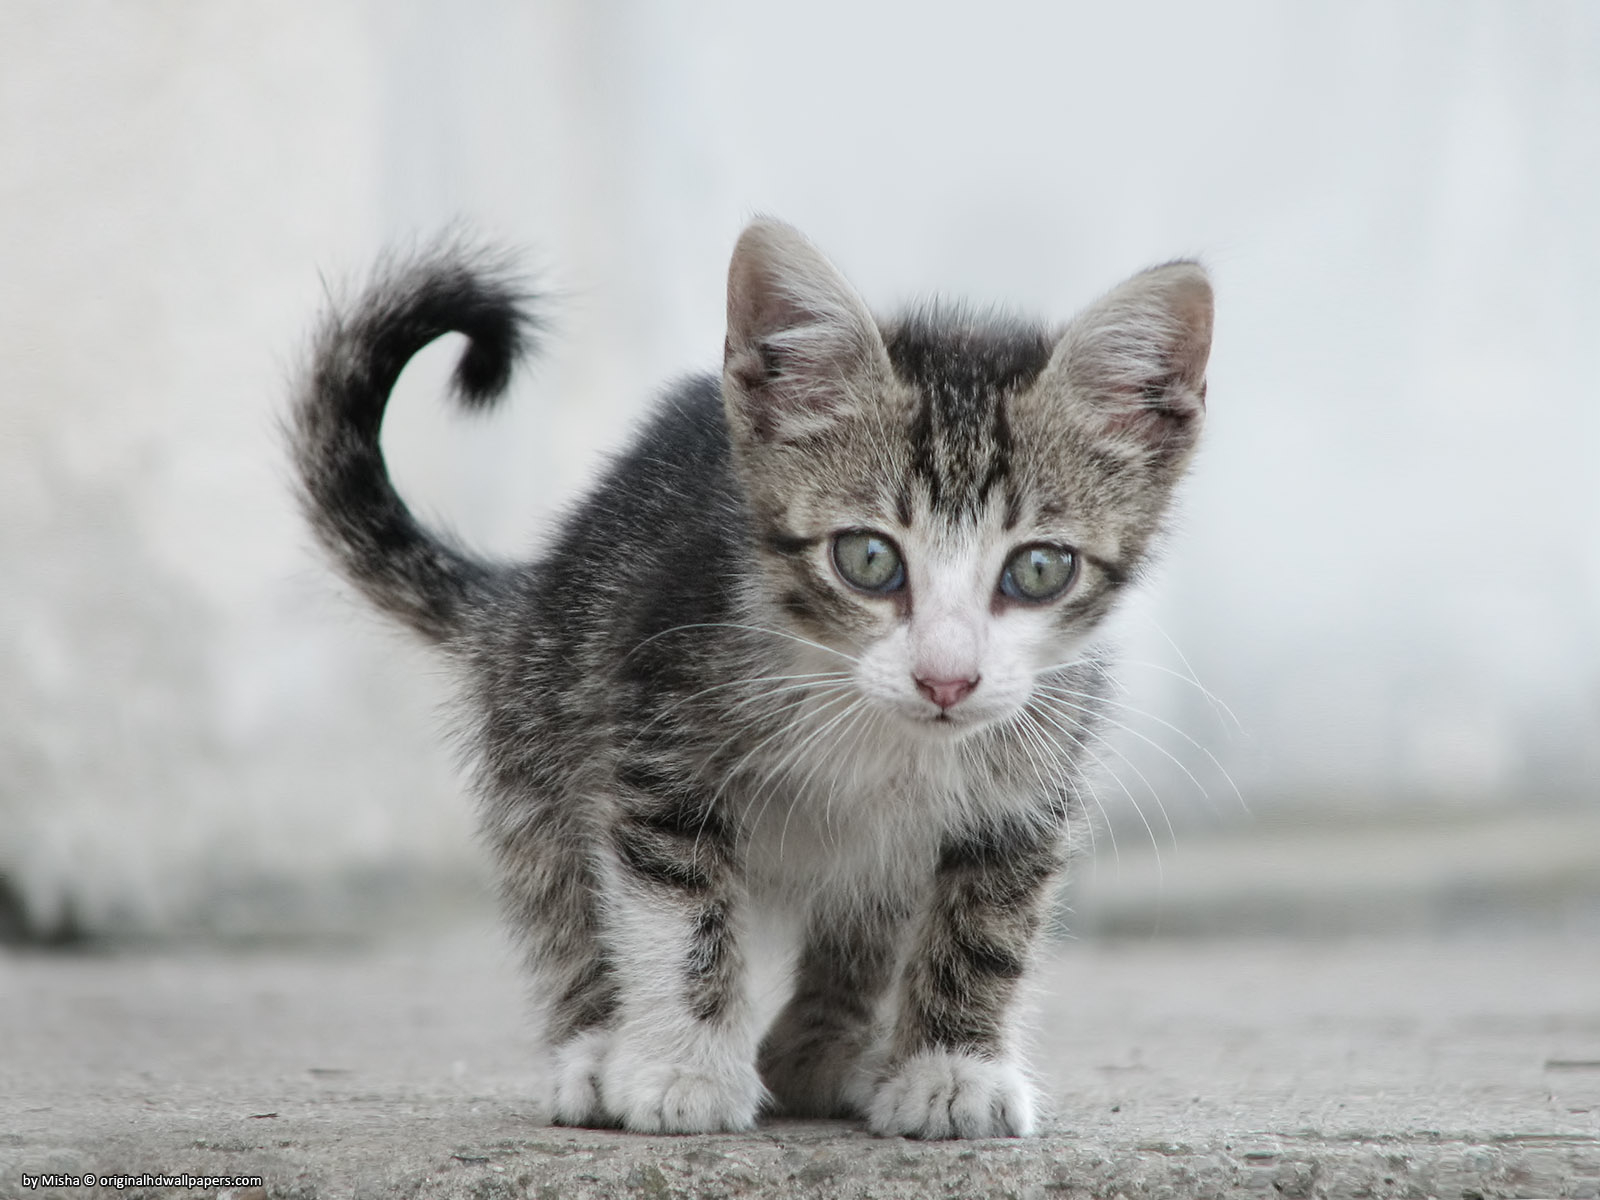 Small Sweet Cat for 1600 x 1200 resolution